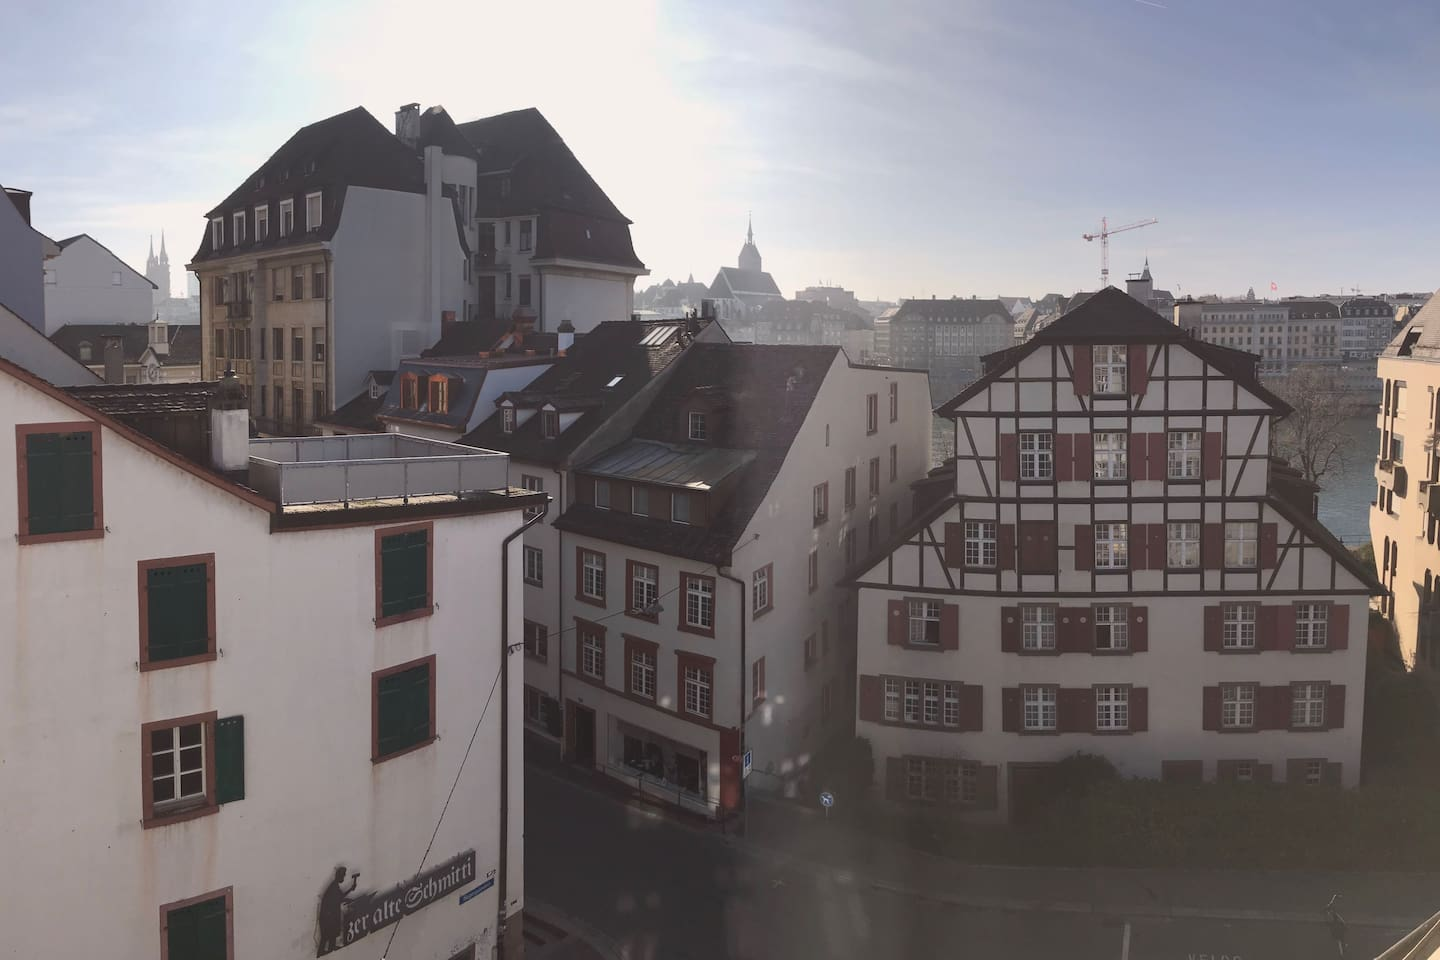 On the left the Basel Münster (Cathedral) and right in front, on the other side of the river, the Hotel Les Trois Rois